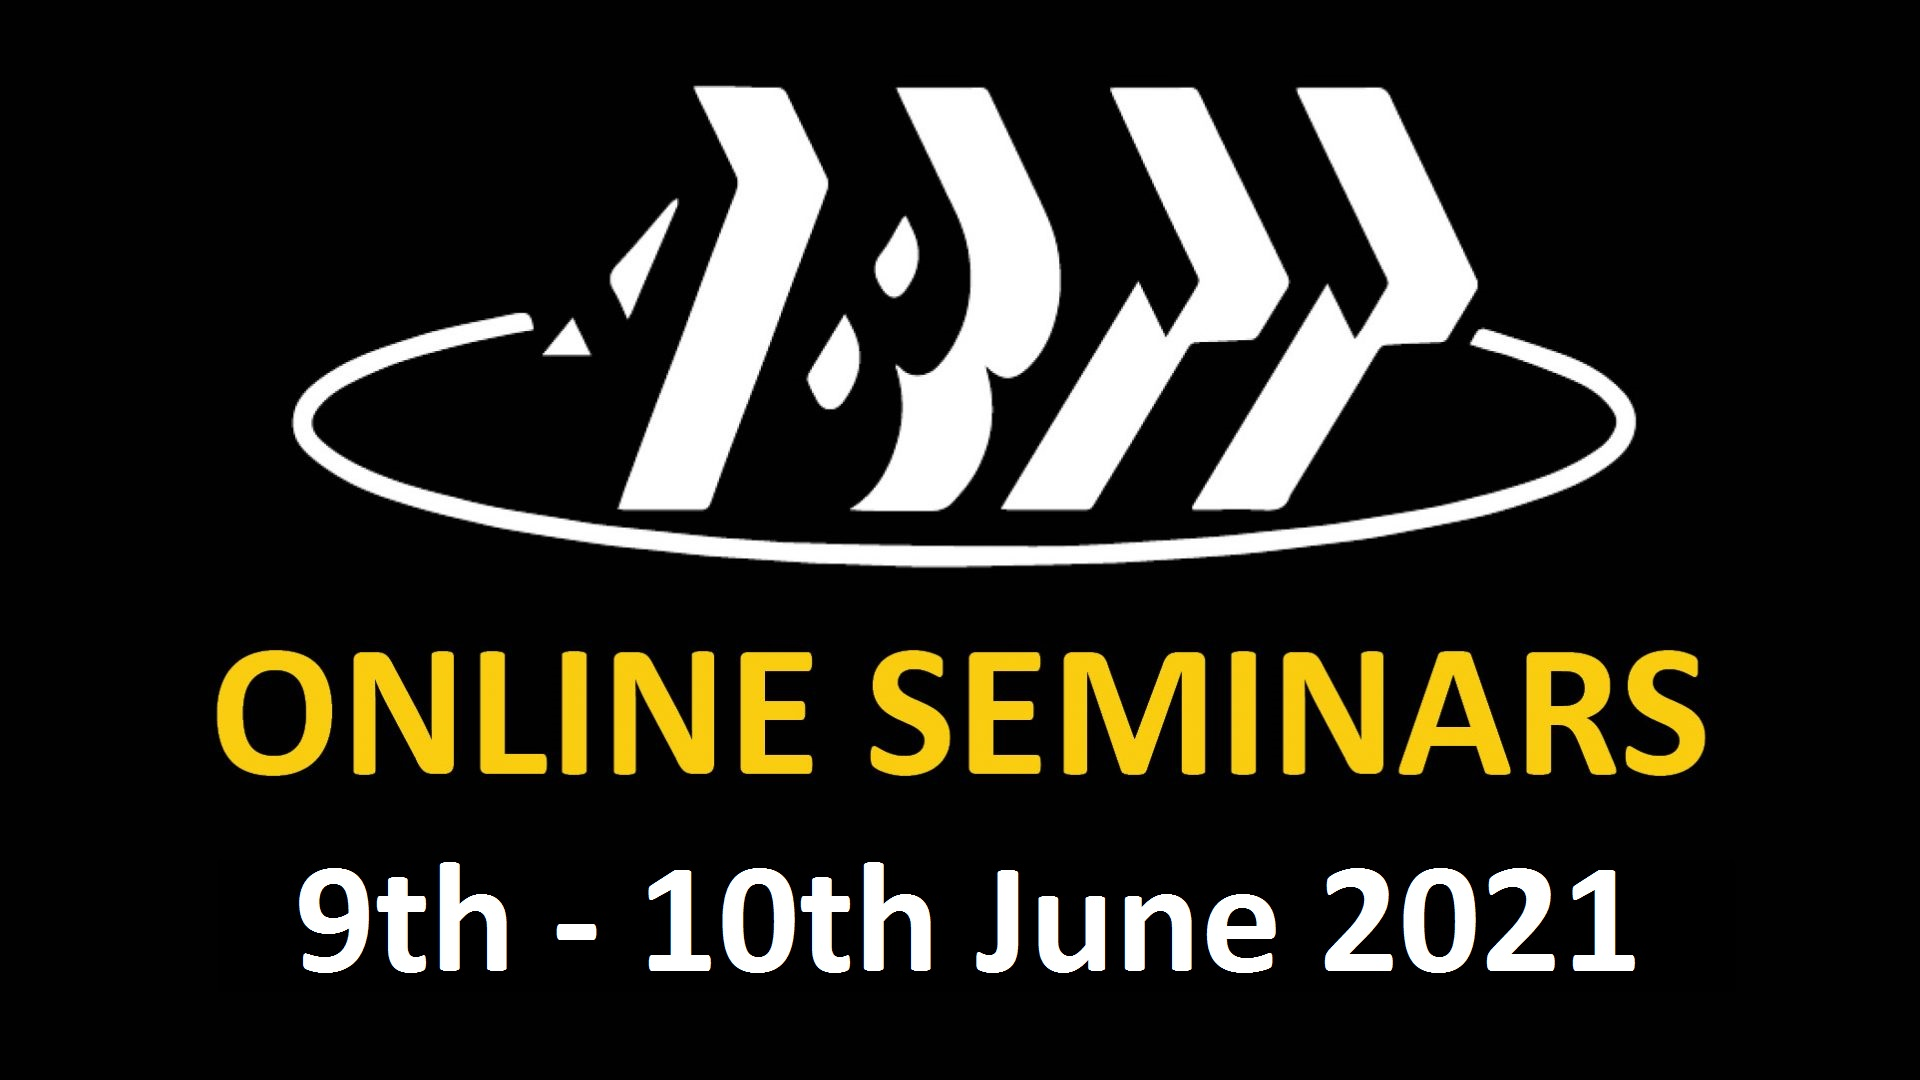 ABTT Seminars: Theatre Show Online Open for Booking (9th -11th June 2021)